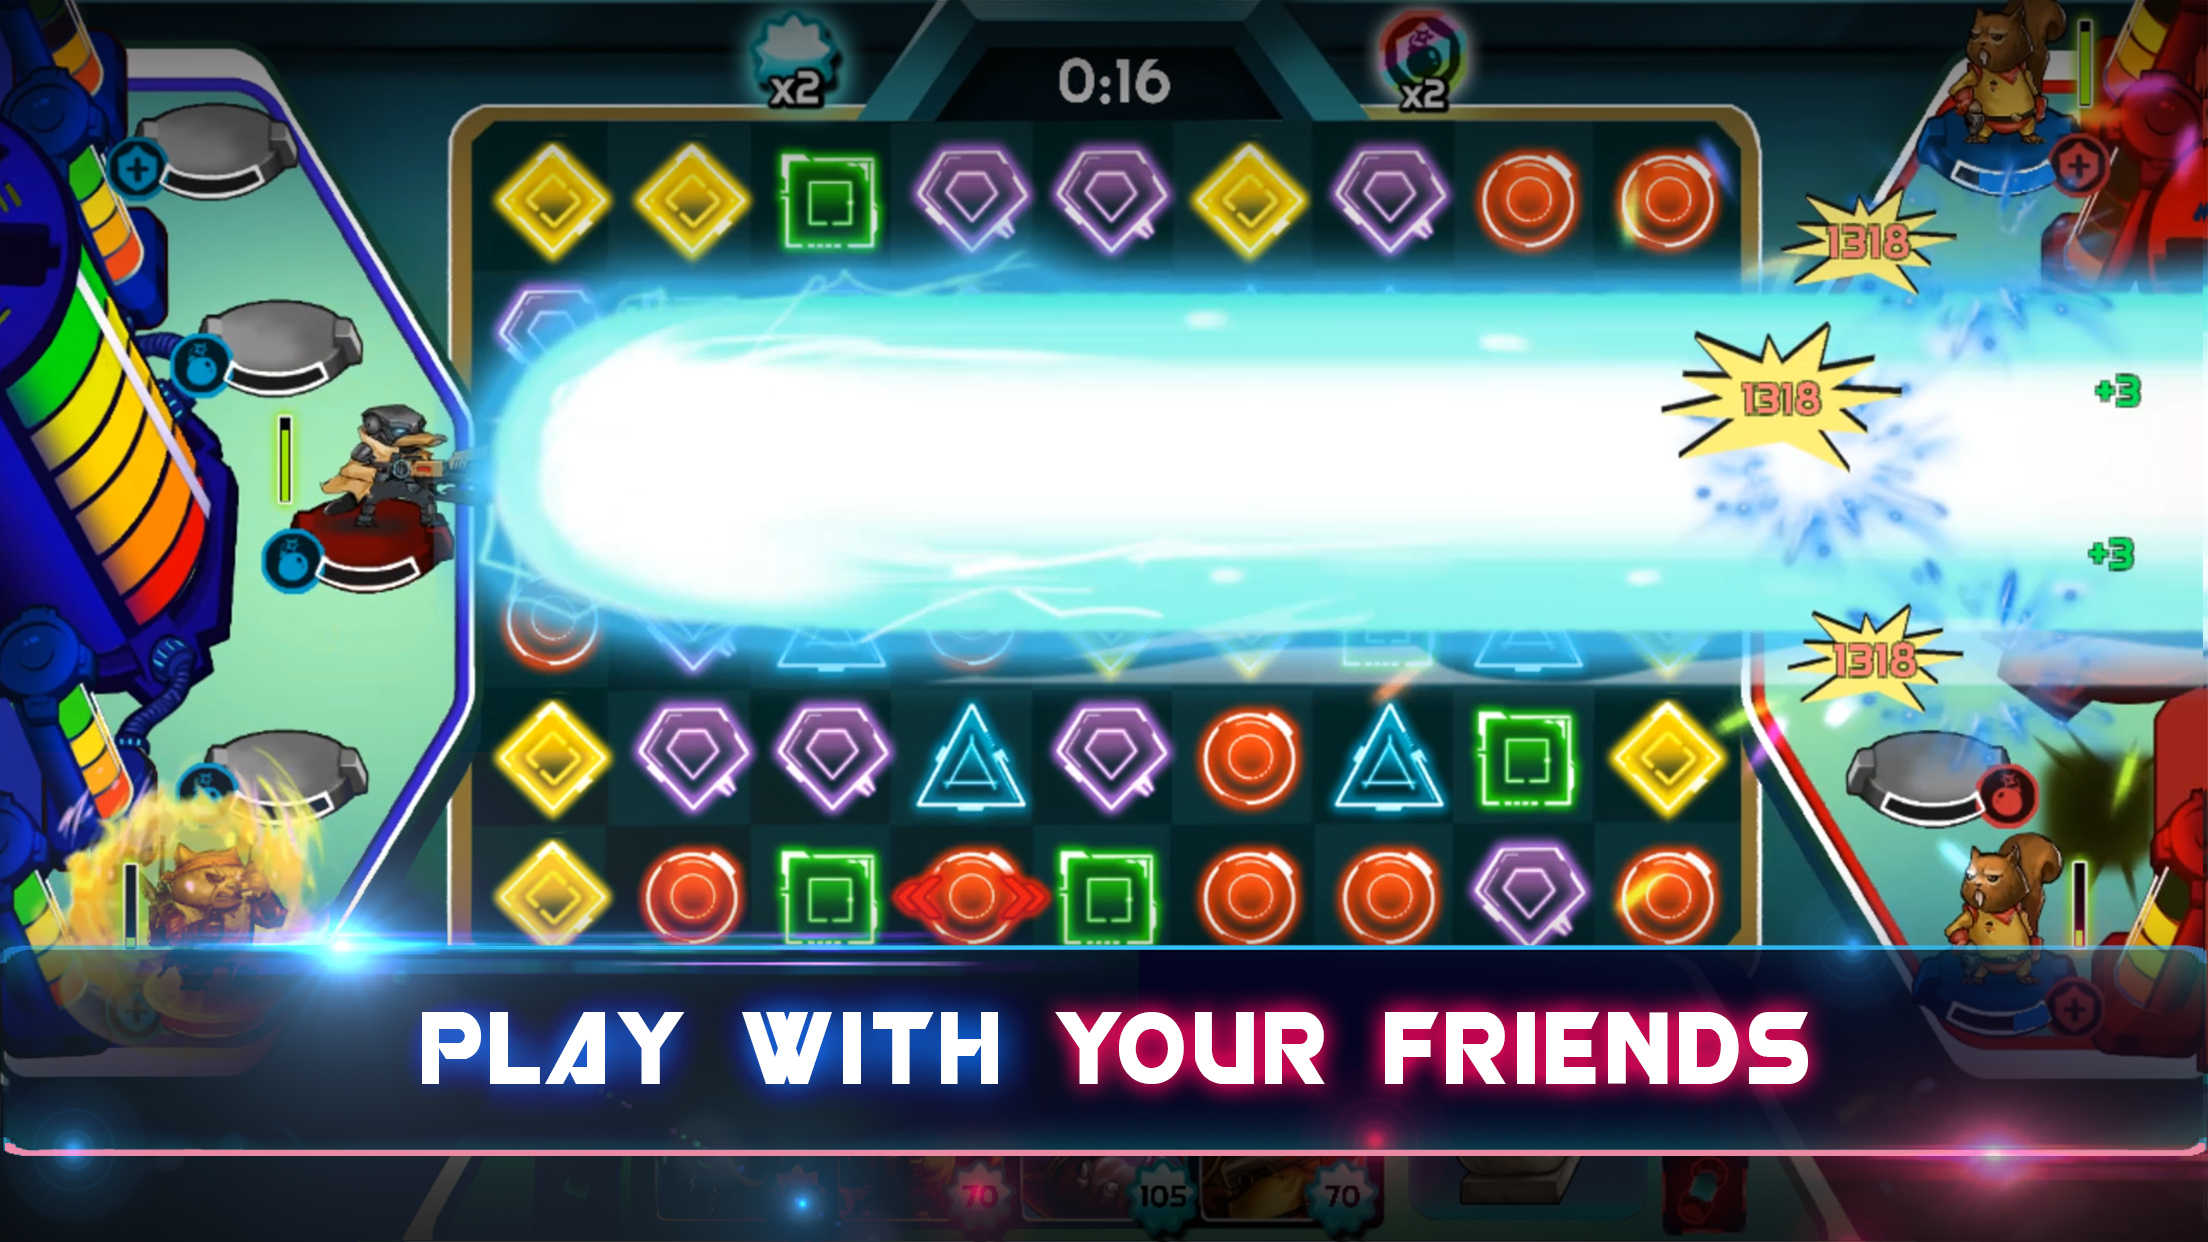 Play with your friends